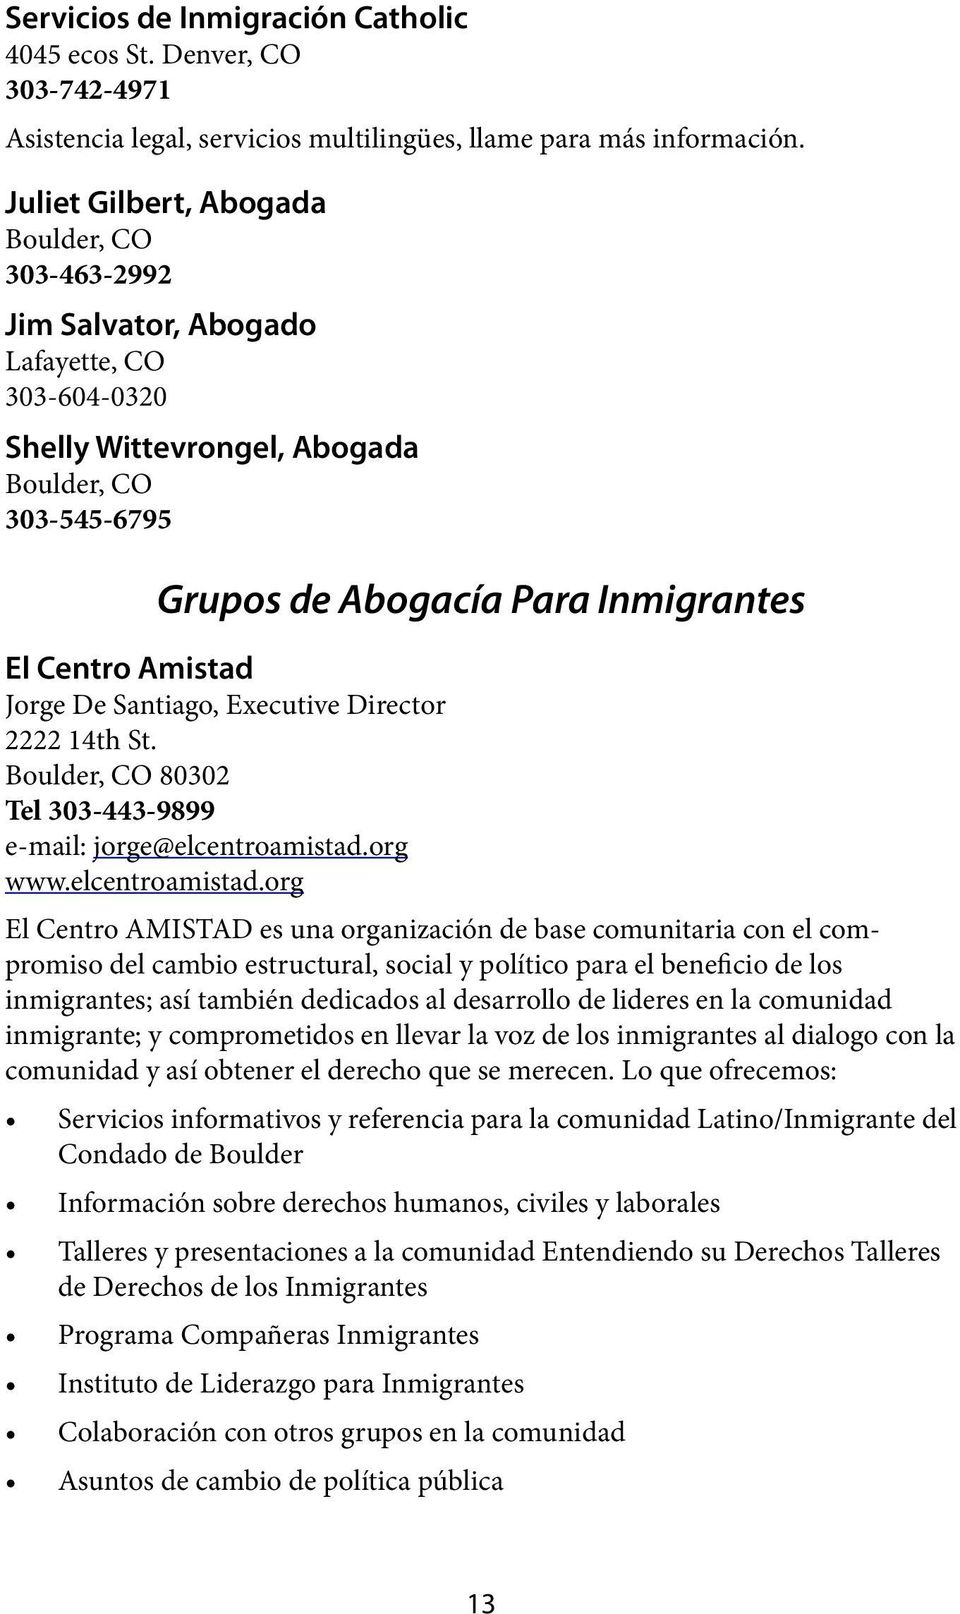 Santiago, Executive Director 2222 14th St. 80302 Tel 303-443-9899 e-mail: jorge@elcentroamistad.